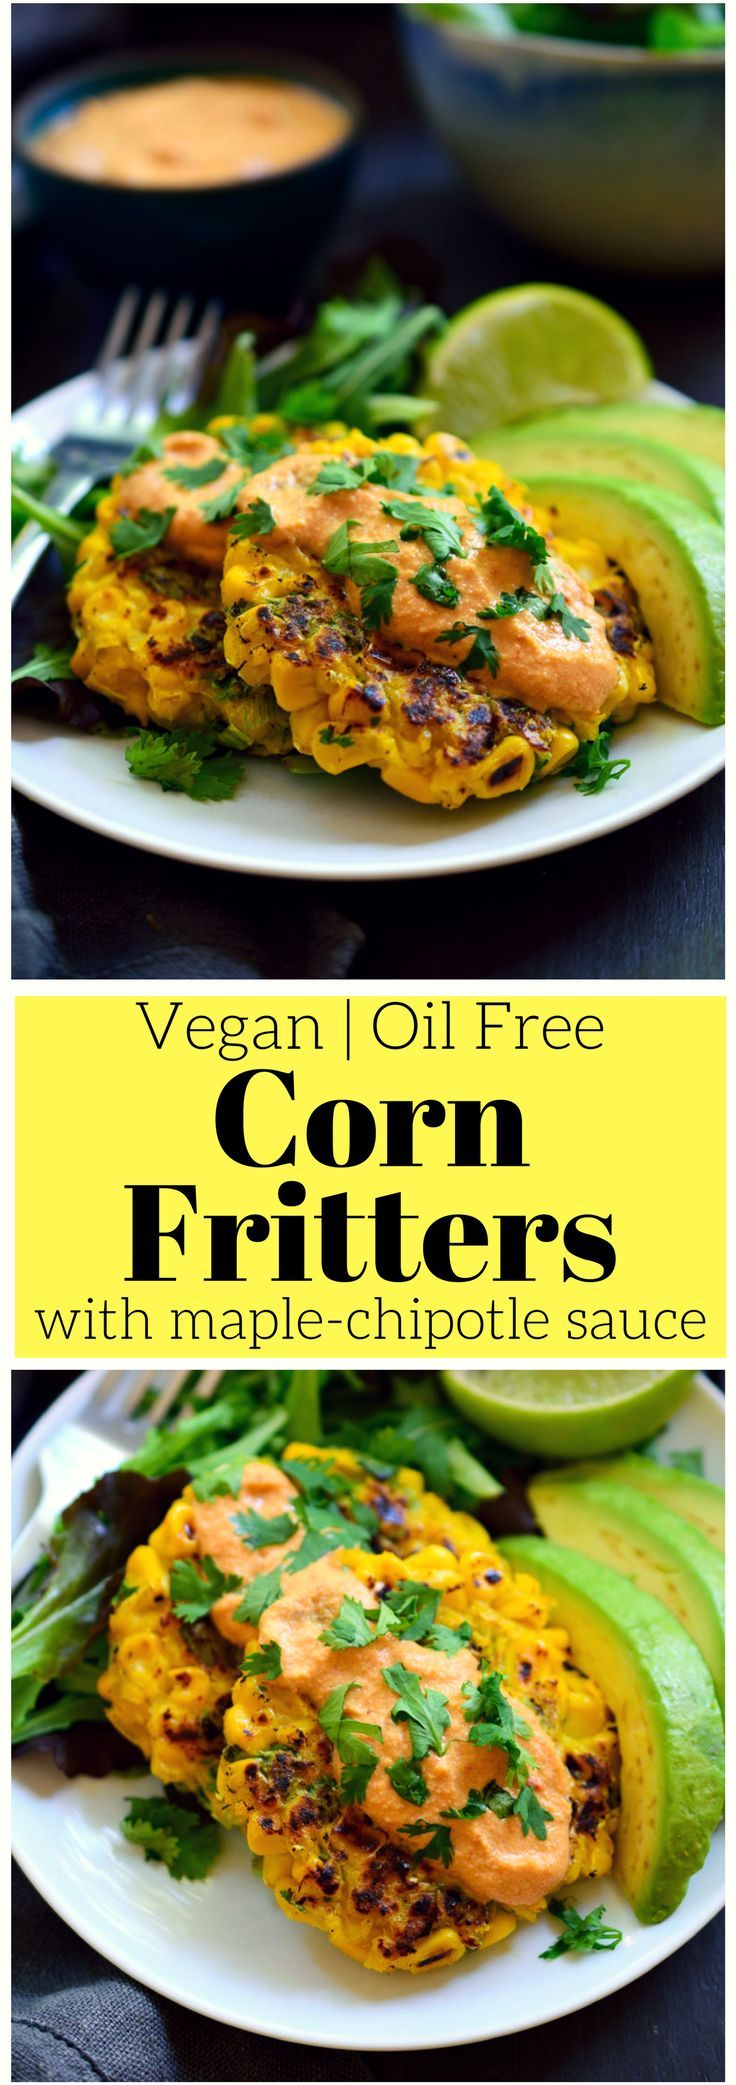 These vegan corn fritters are very easy to make with just a few simple ingredients and are totally oil free. Served with a sweet and savoury maple-chipotle sauce and cool avocado, they're great for breakfast, lunch or dinner!